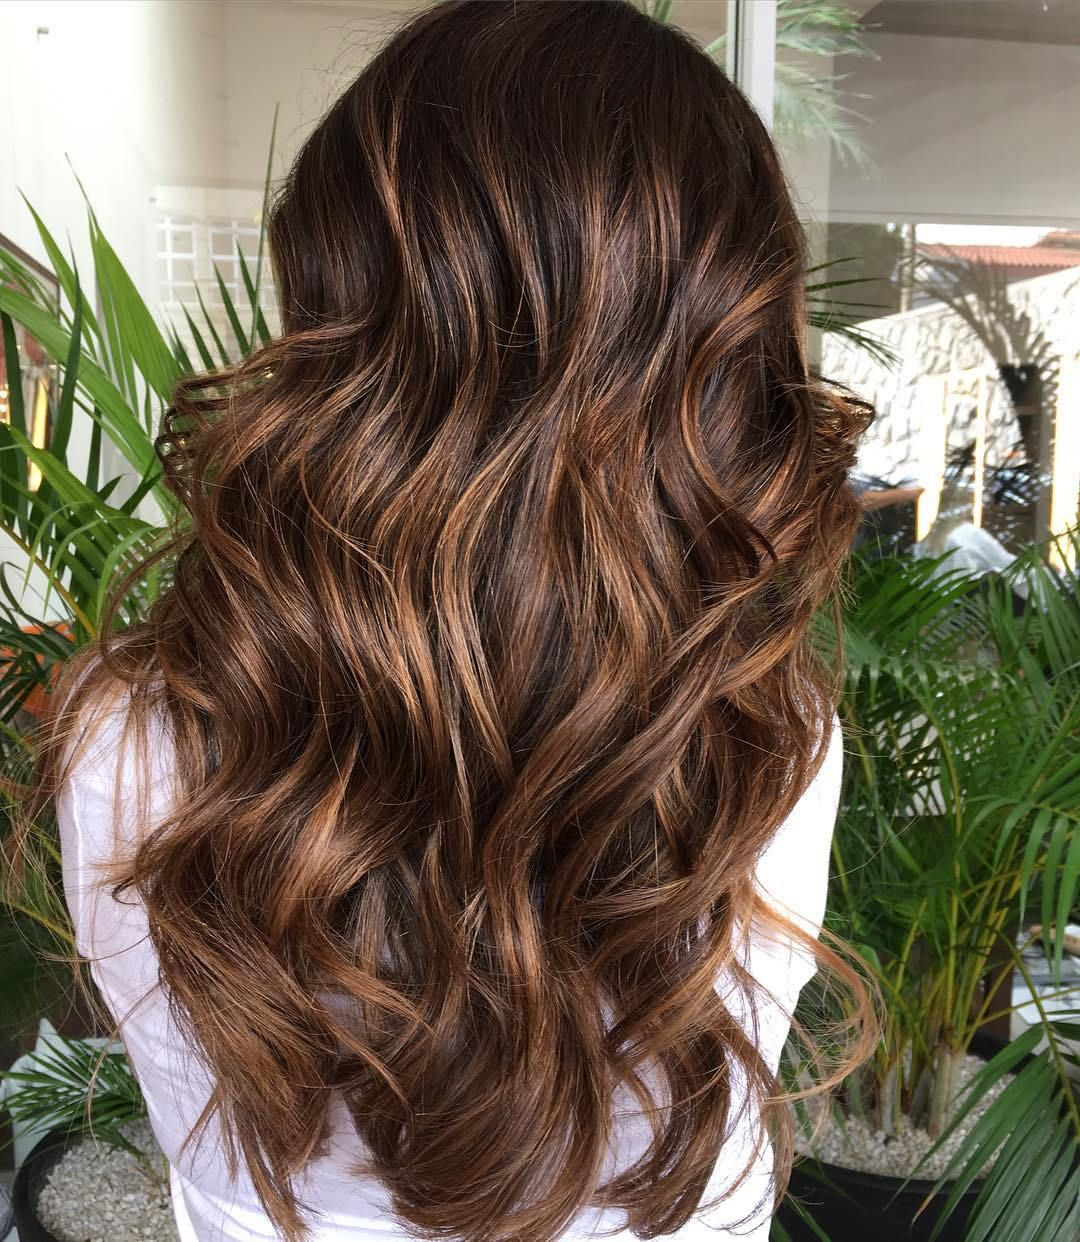 Dark Brown Hair Color With Highlights Best Hair Color To Cover